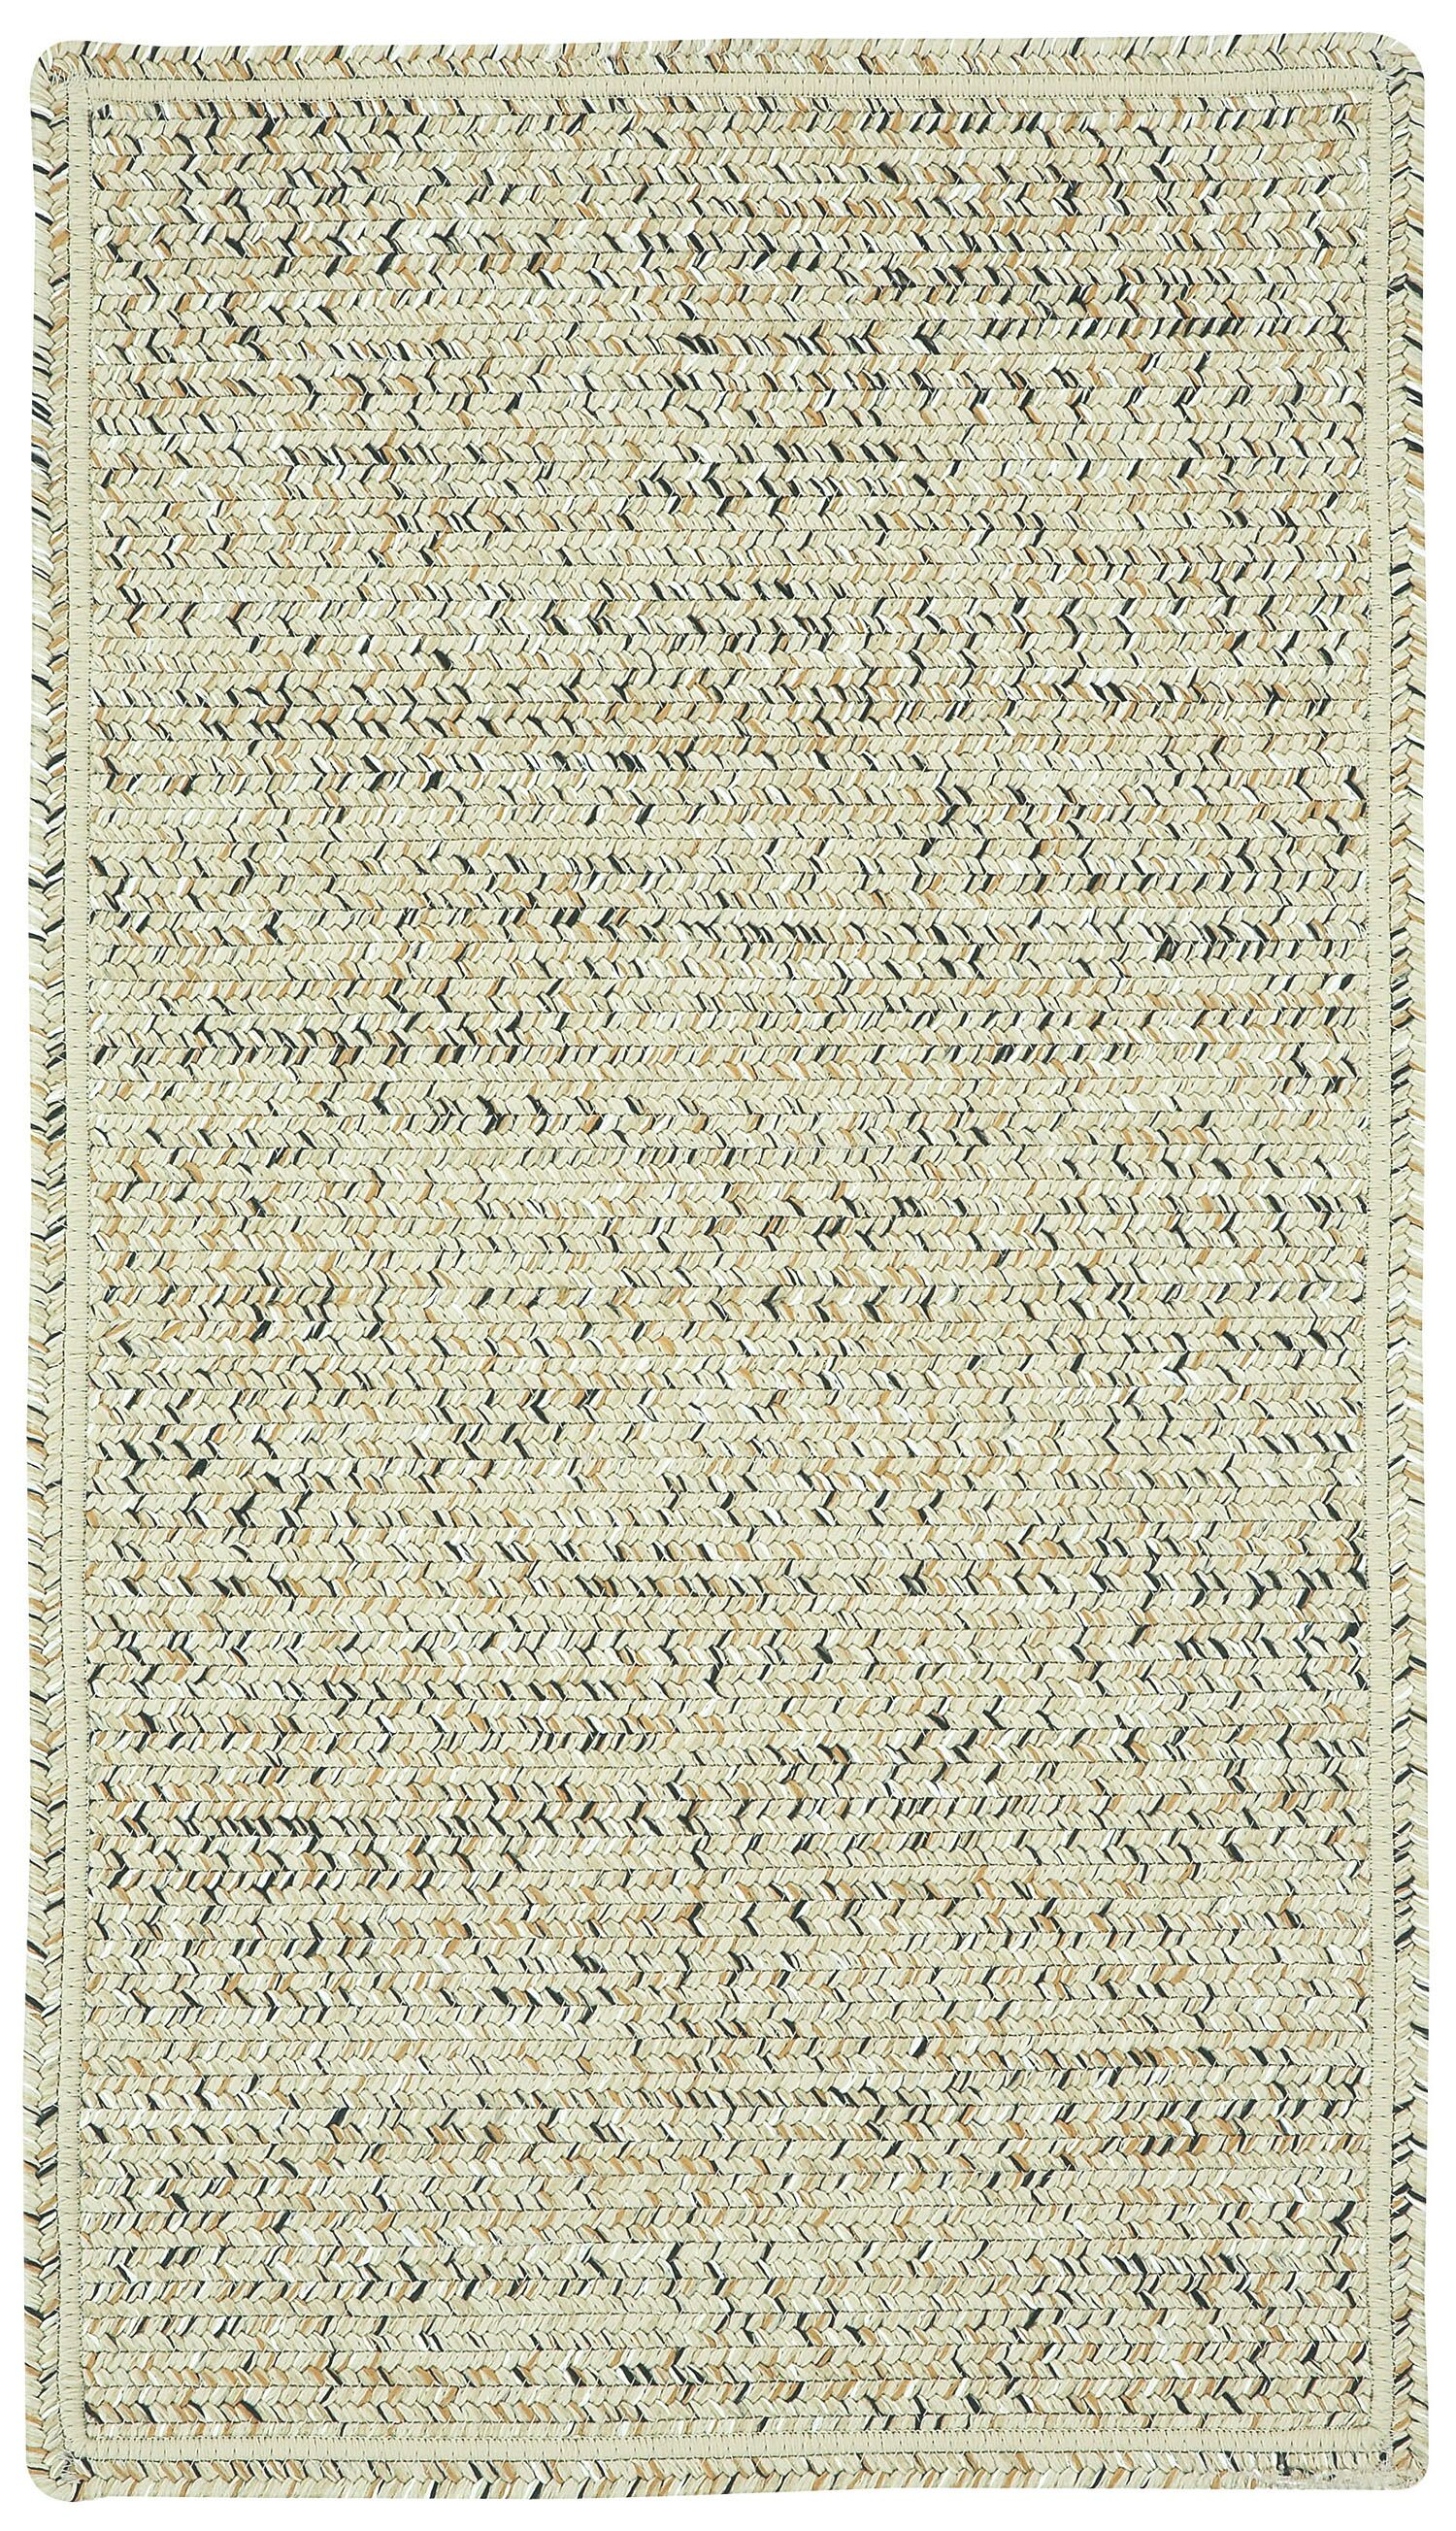 Isaiah Sandy Beach Variegated Outdoor Area Rug Rug Size: Concentric Square 7'6